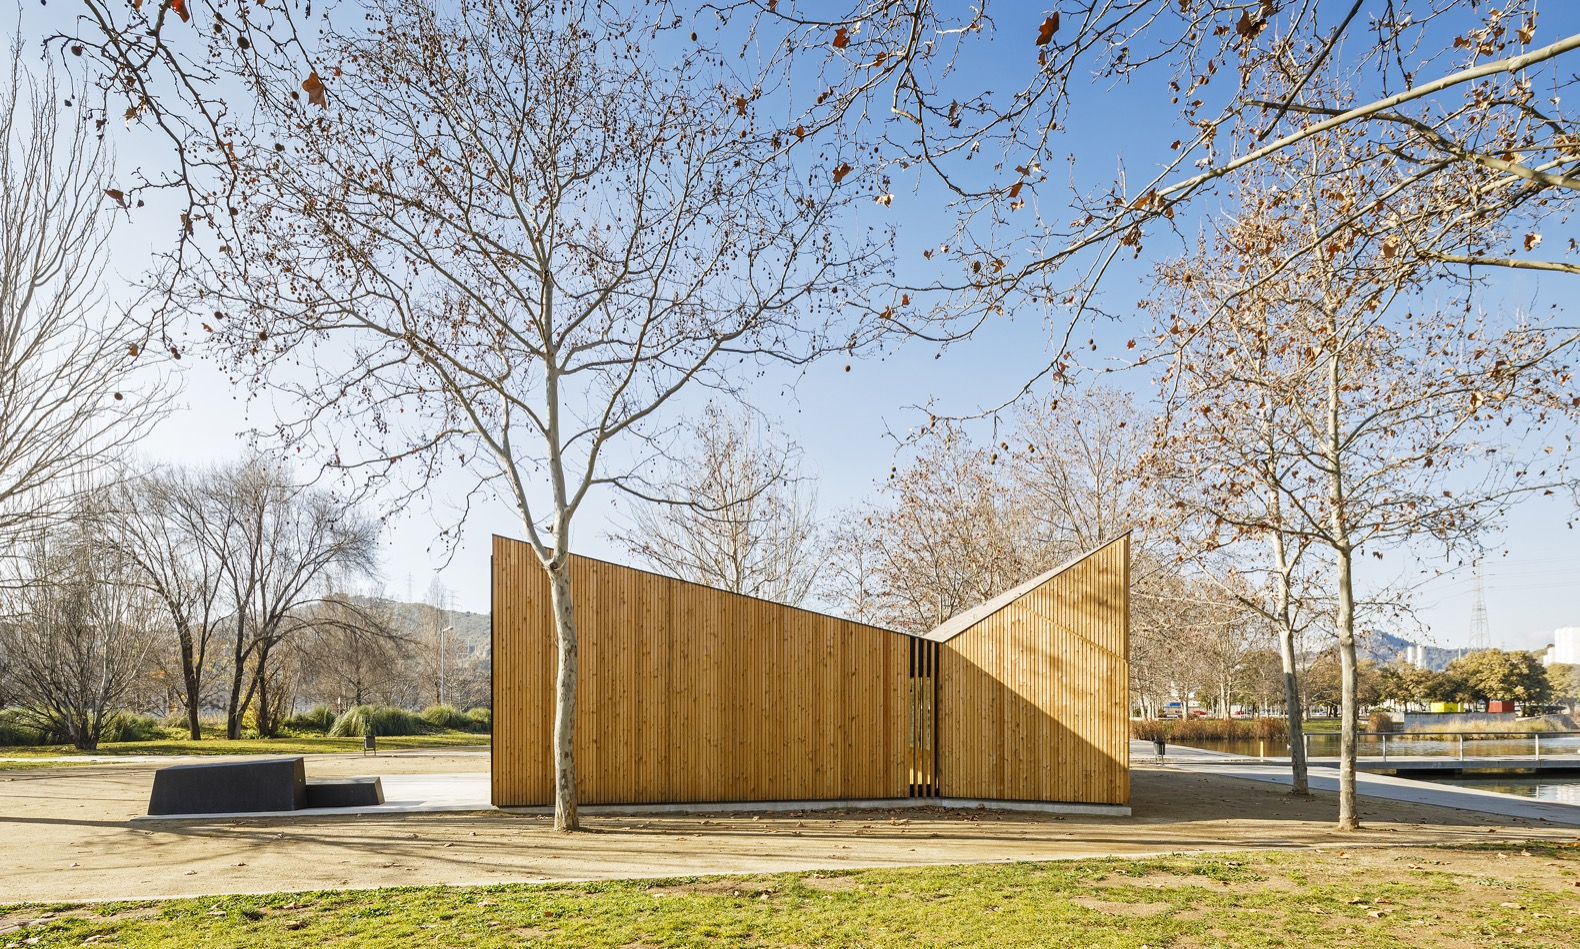 A modular classroom for environmental education pops up in a Barcelona park